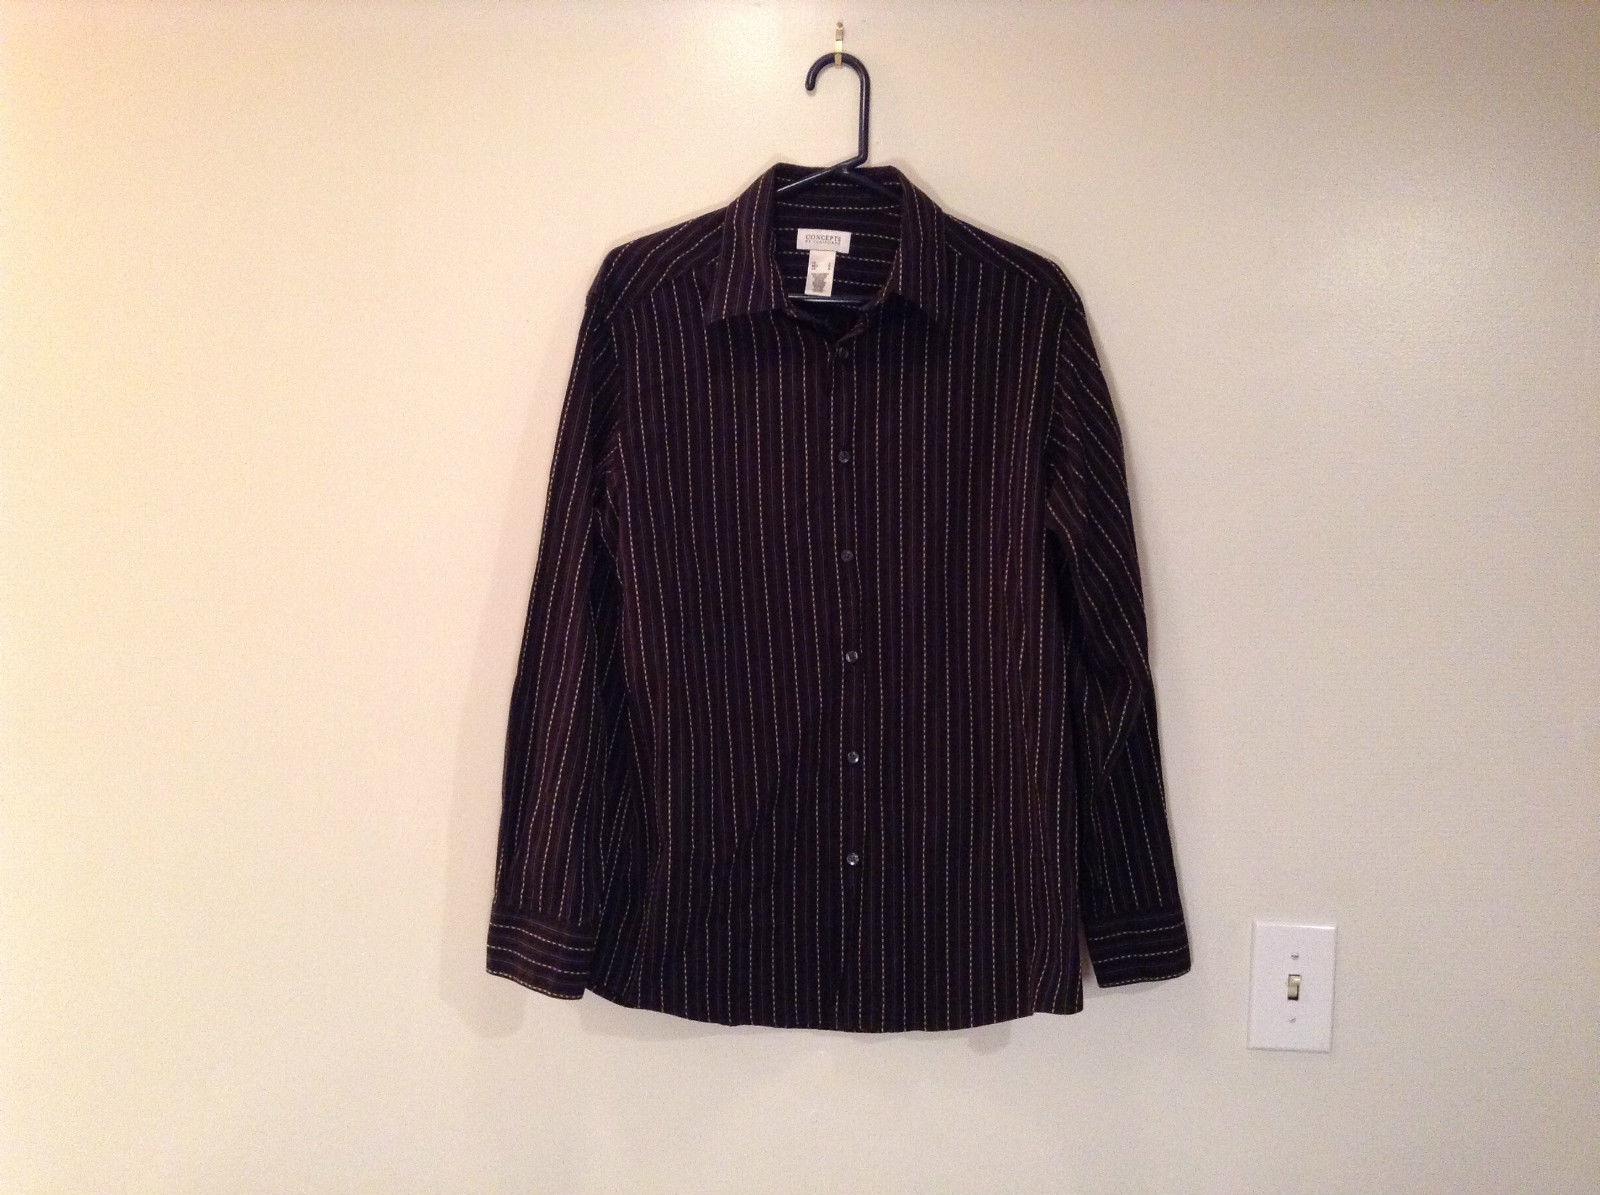 Very Nice Concepts by Claiborne Long Sleeve Black with Stripes Button Up Shirt